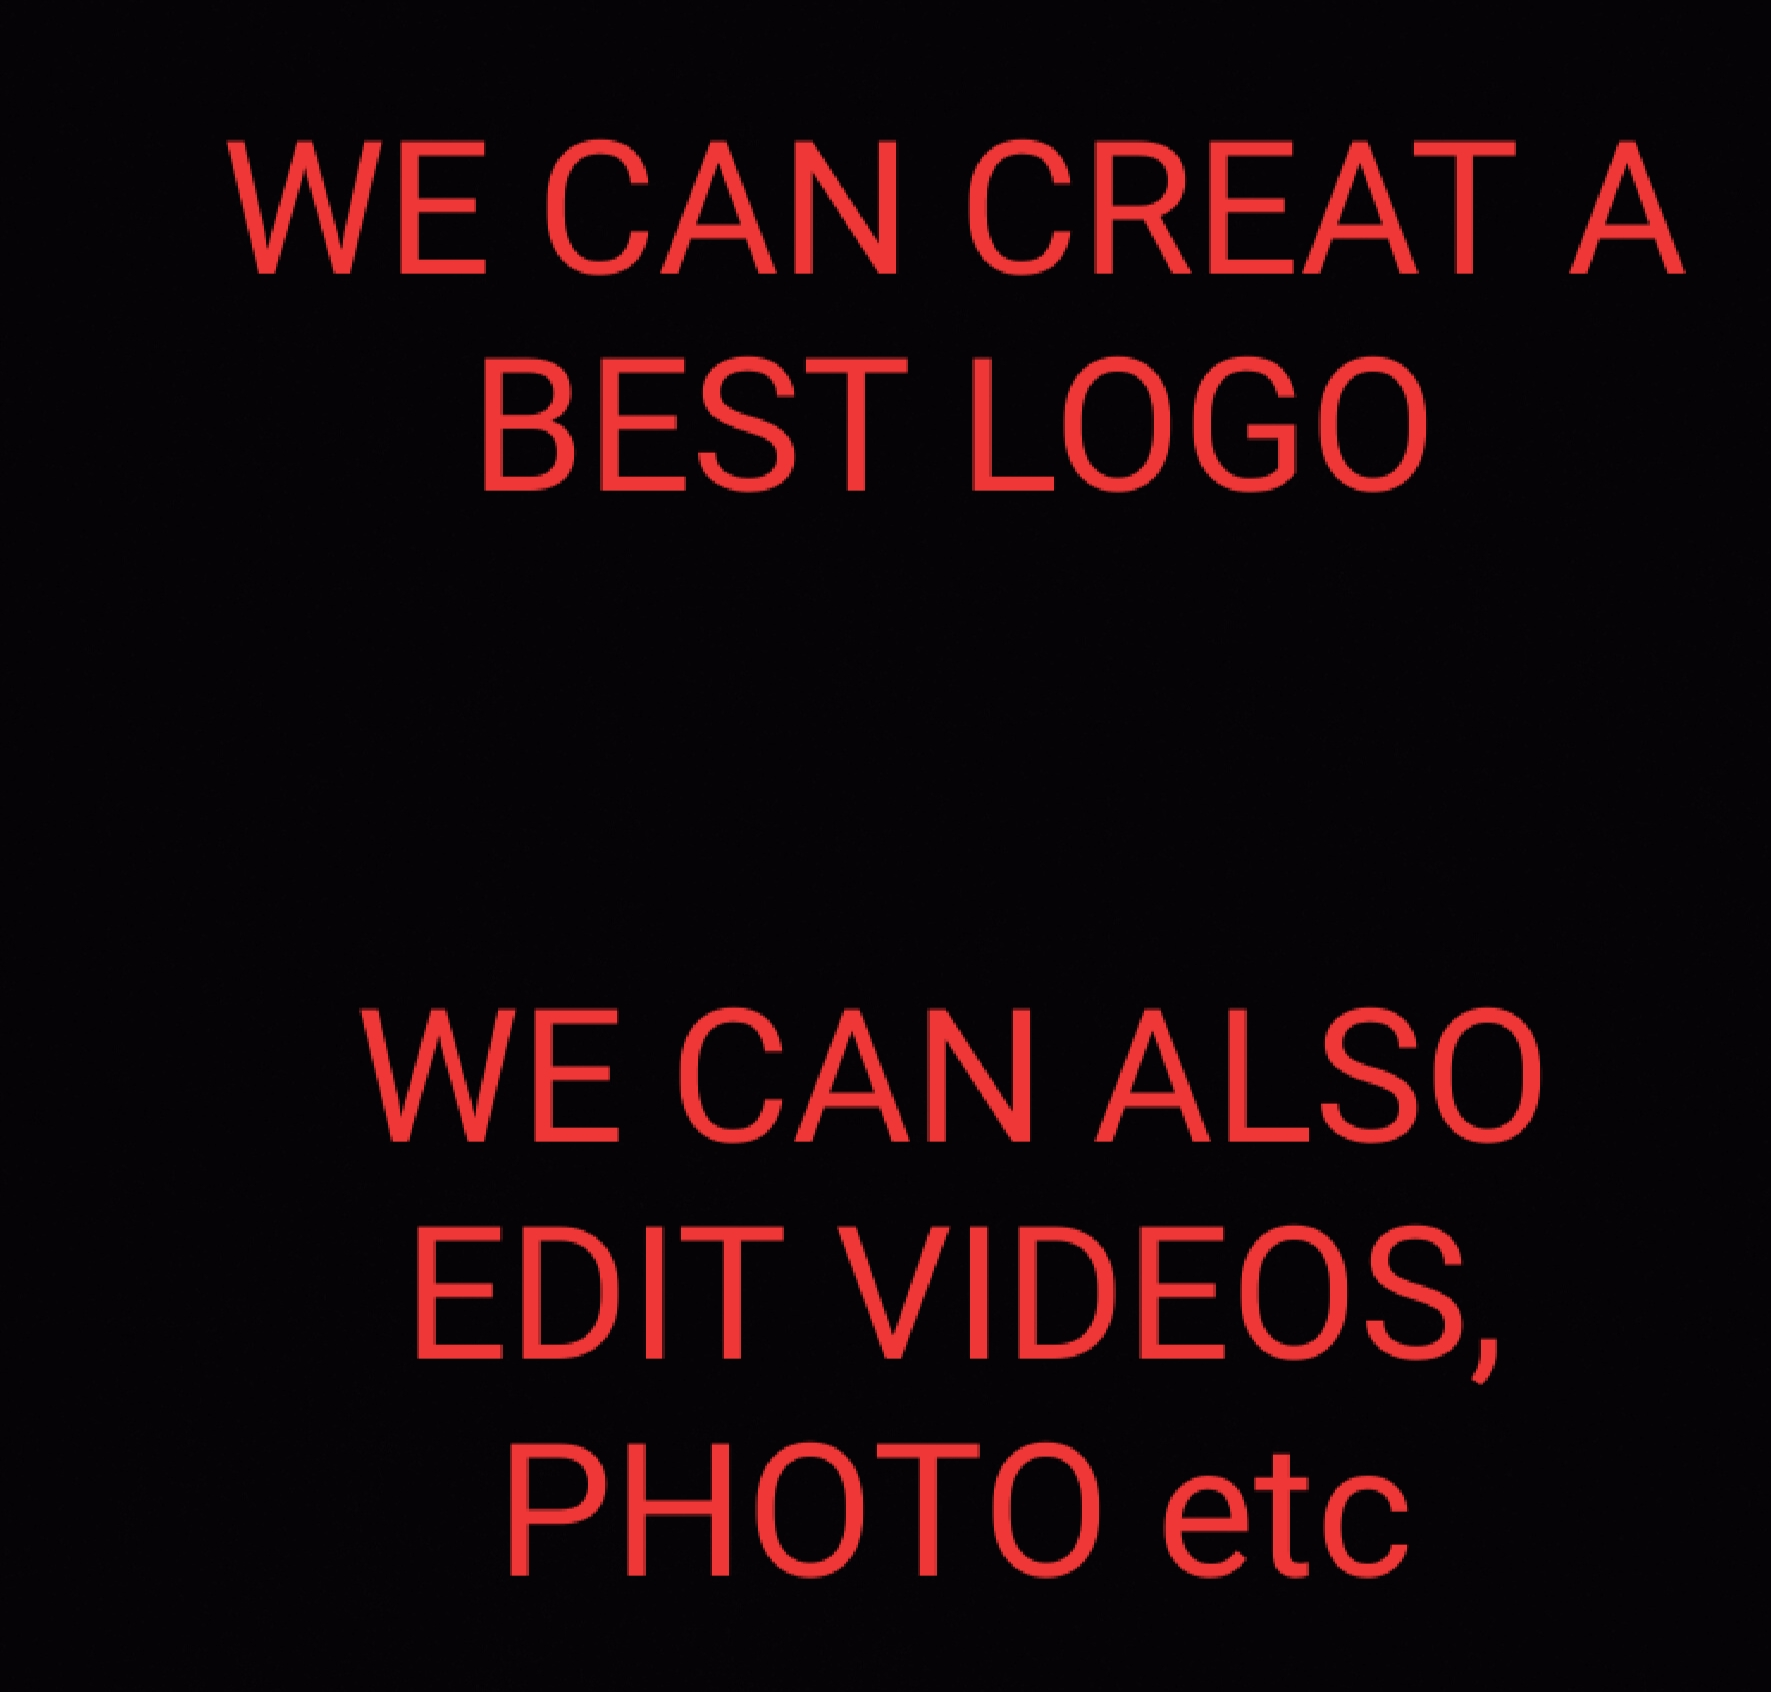 We create a best logo in short time